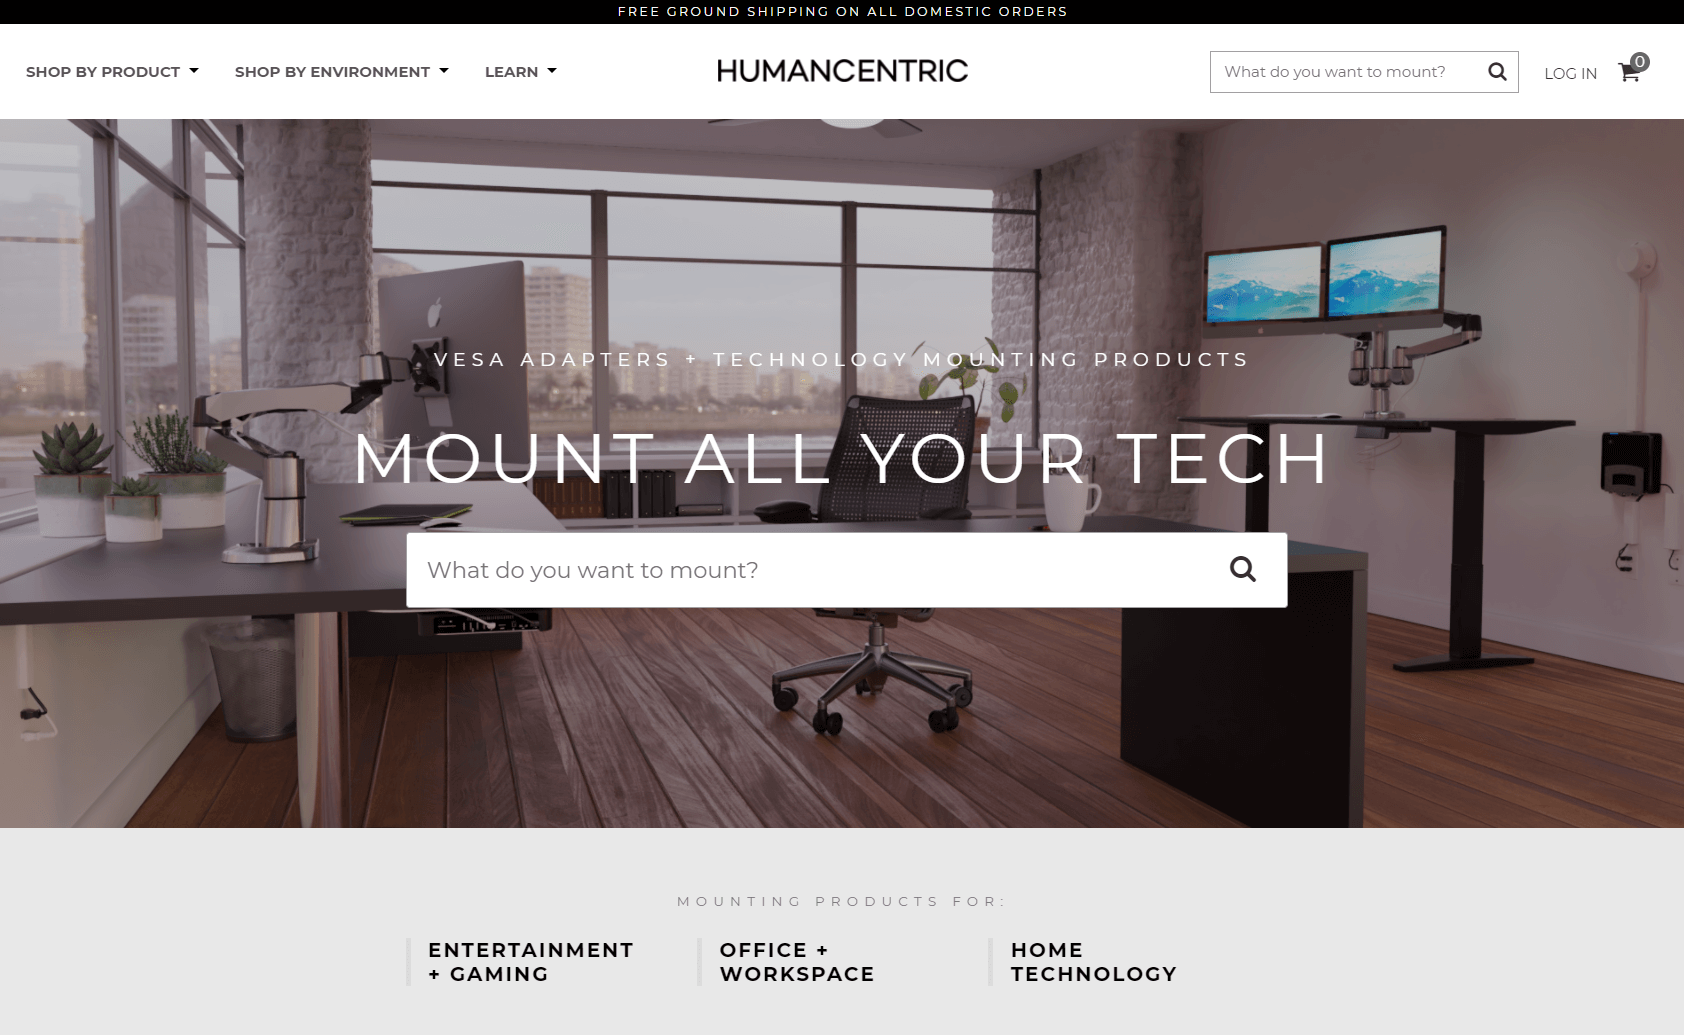 humancentric uses visual storytelling to sell products